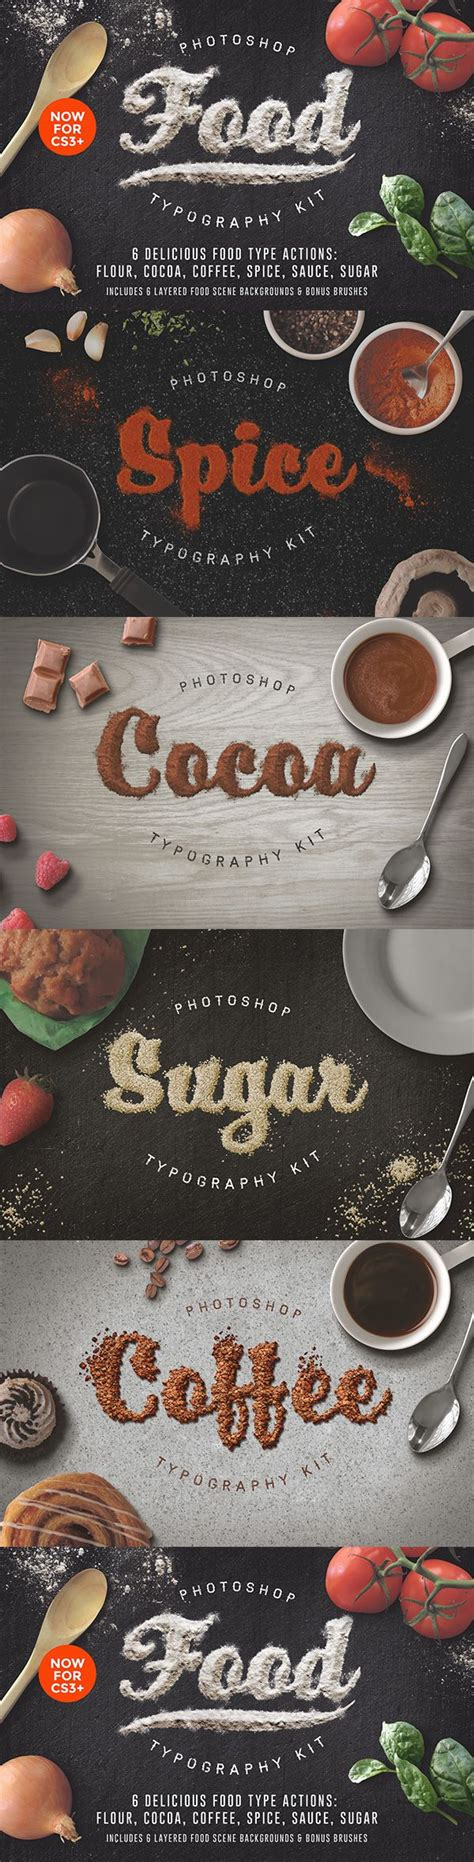 food typography tutorial photoshop 99 best images about photos and photo actions on pinterest